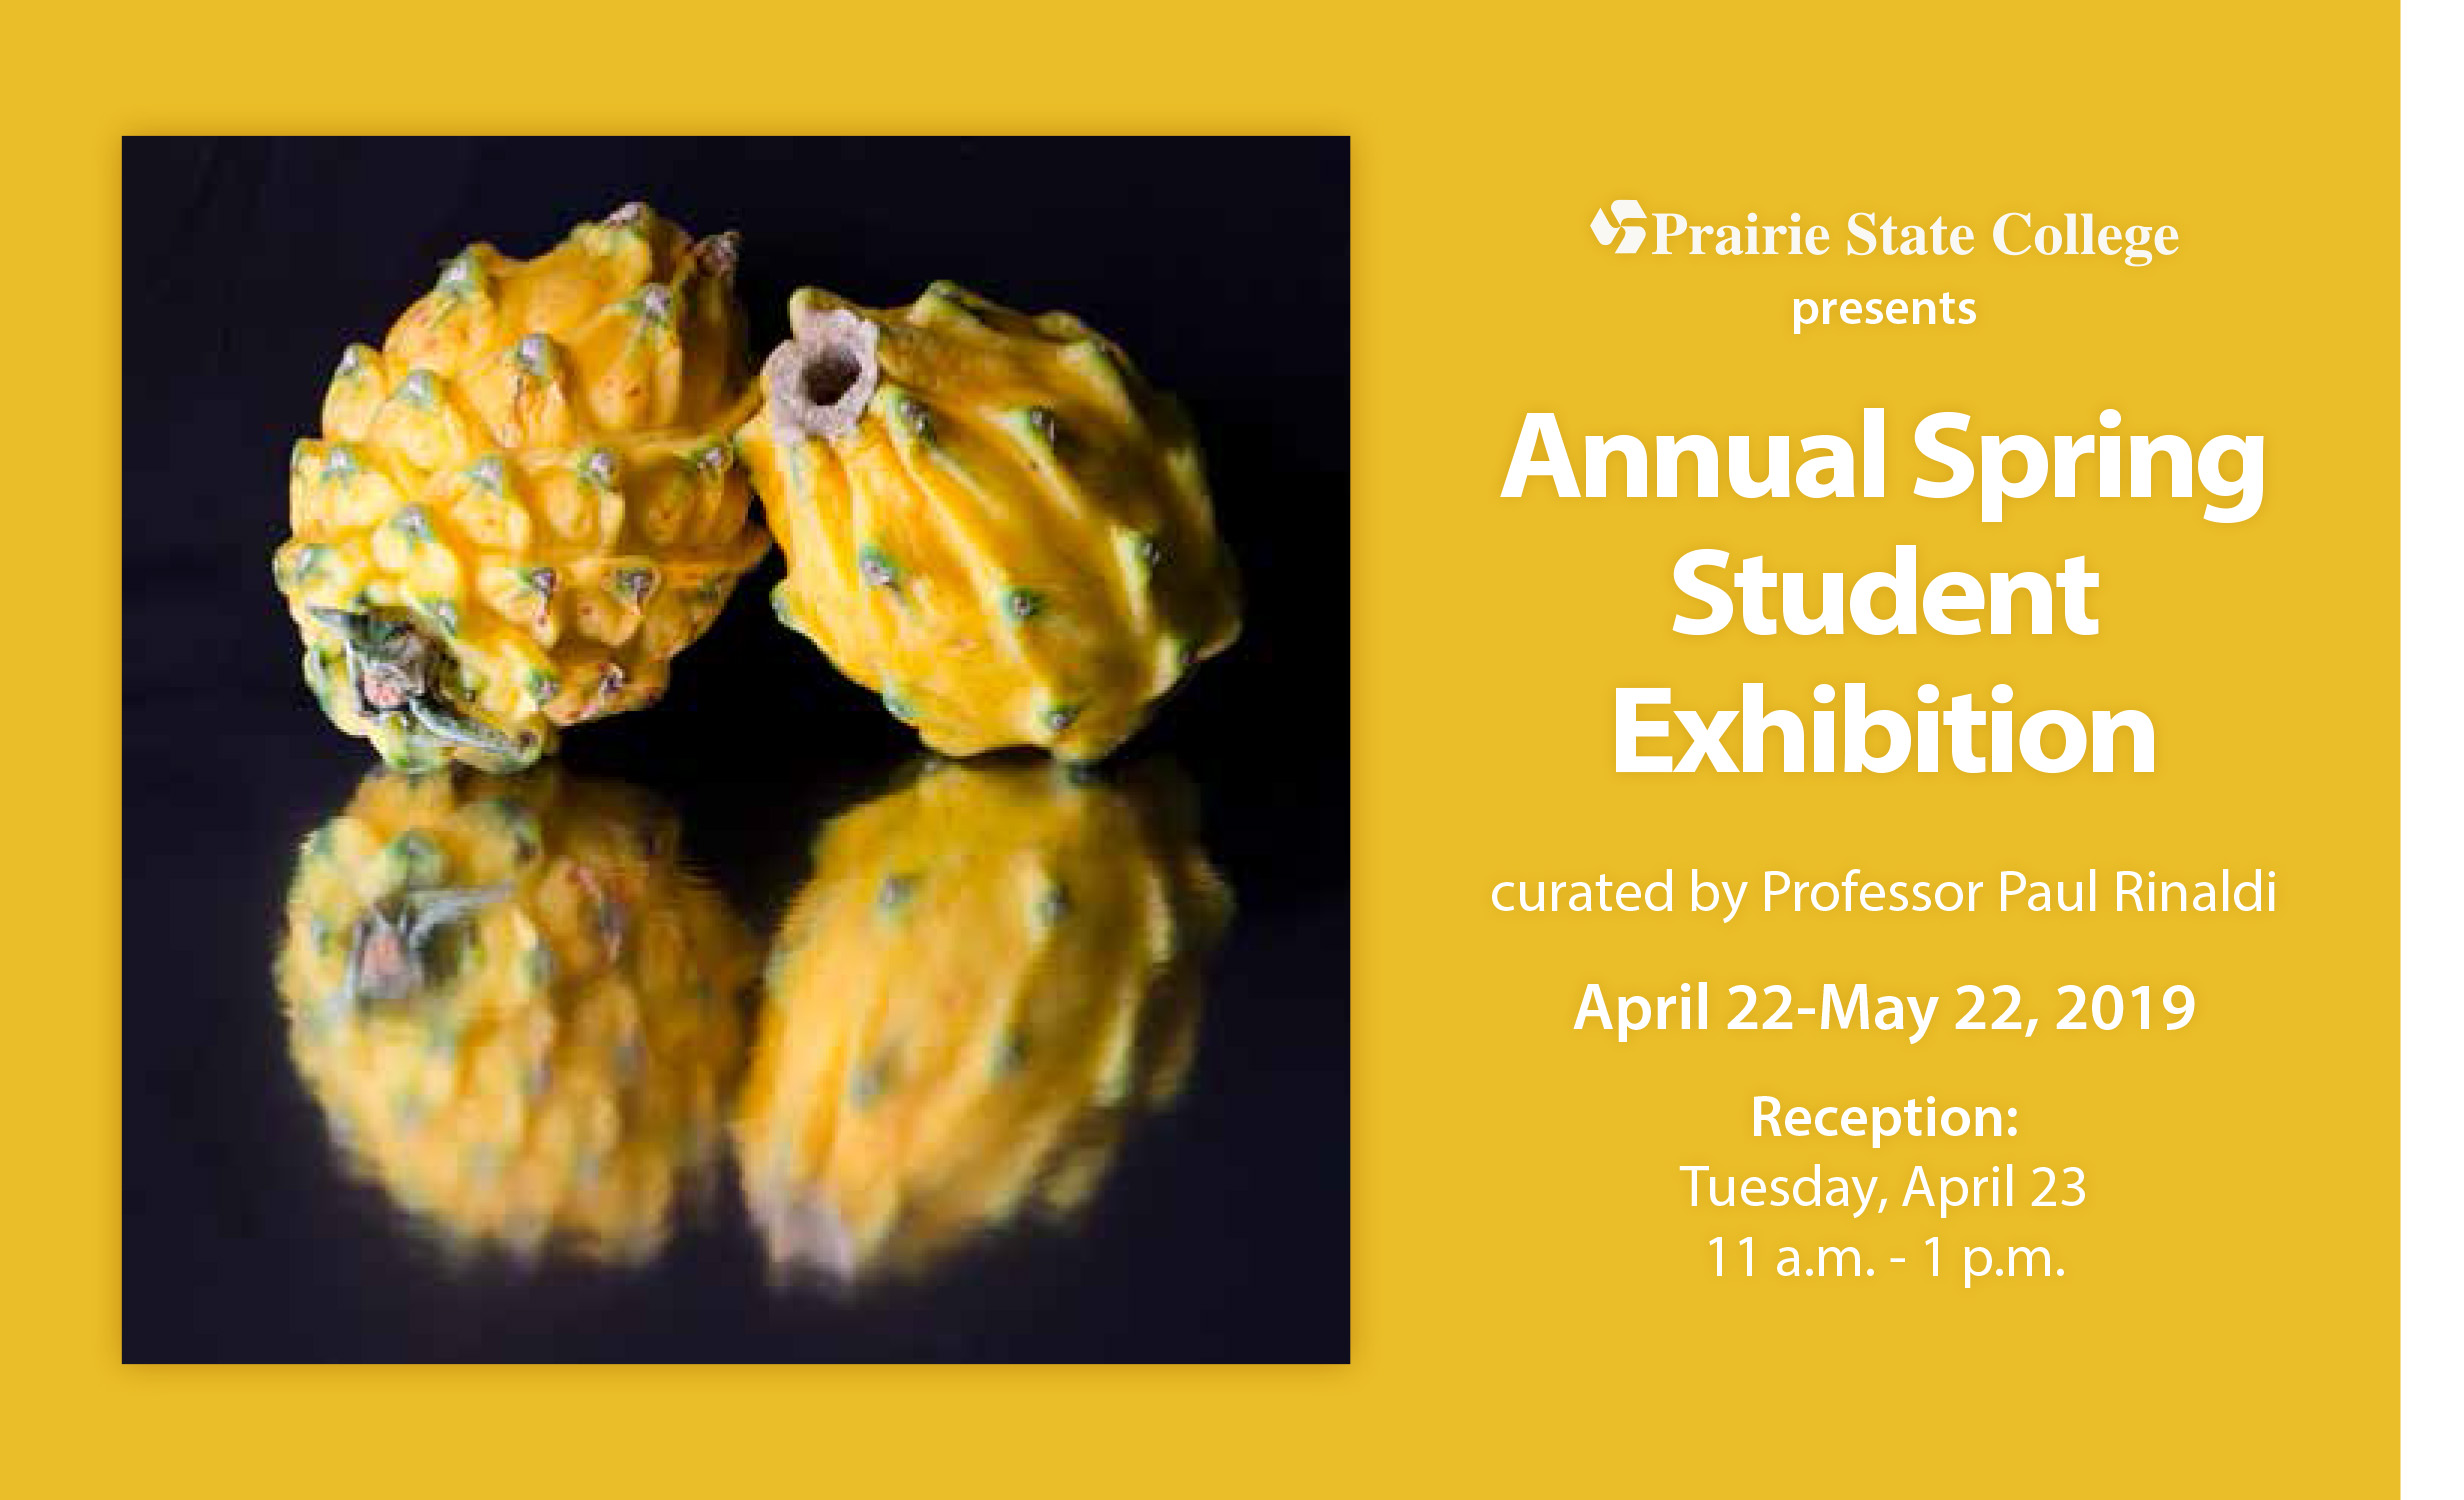 postcard - Annual Spring Student Exhibition